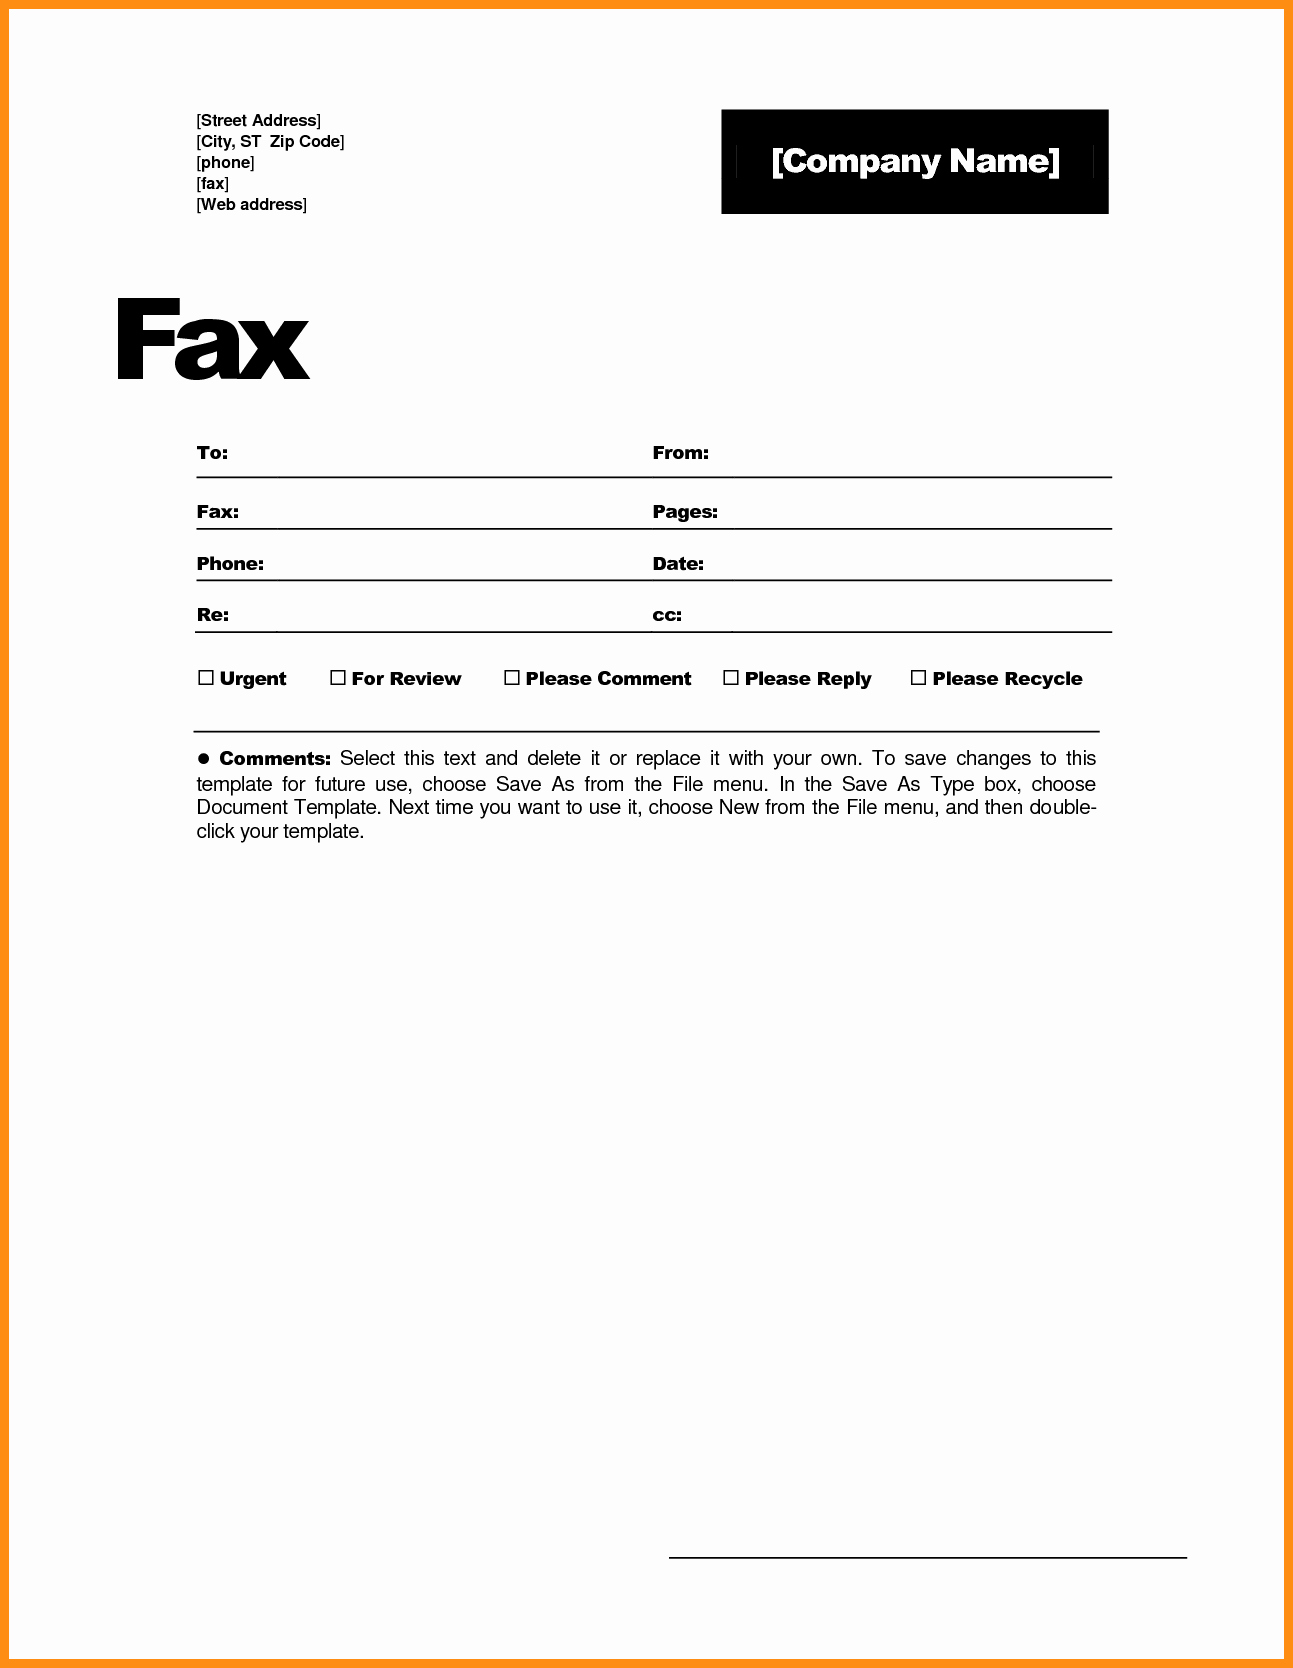 Sample Fax Cover Sheets Template New 6 Free Fax Cover Sheet Template Word